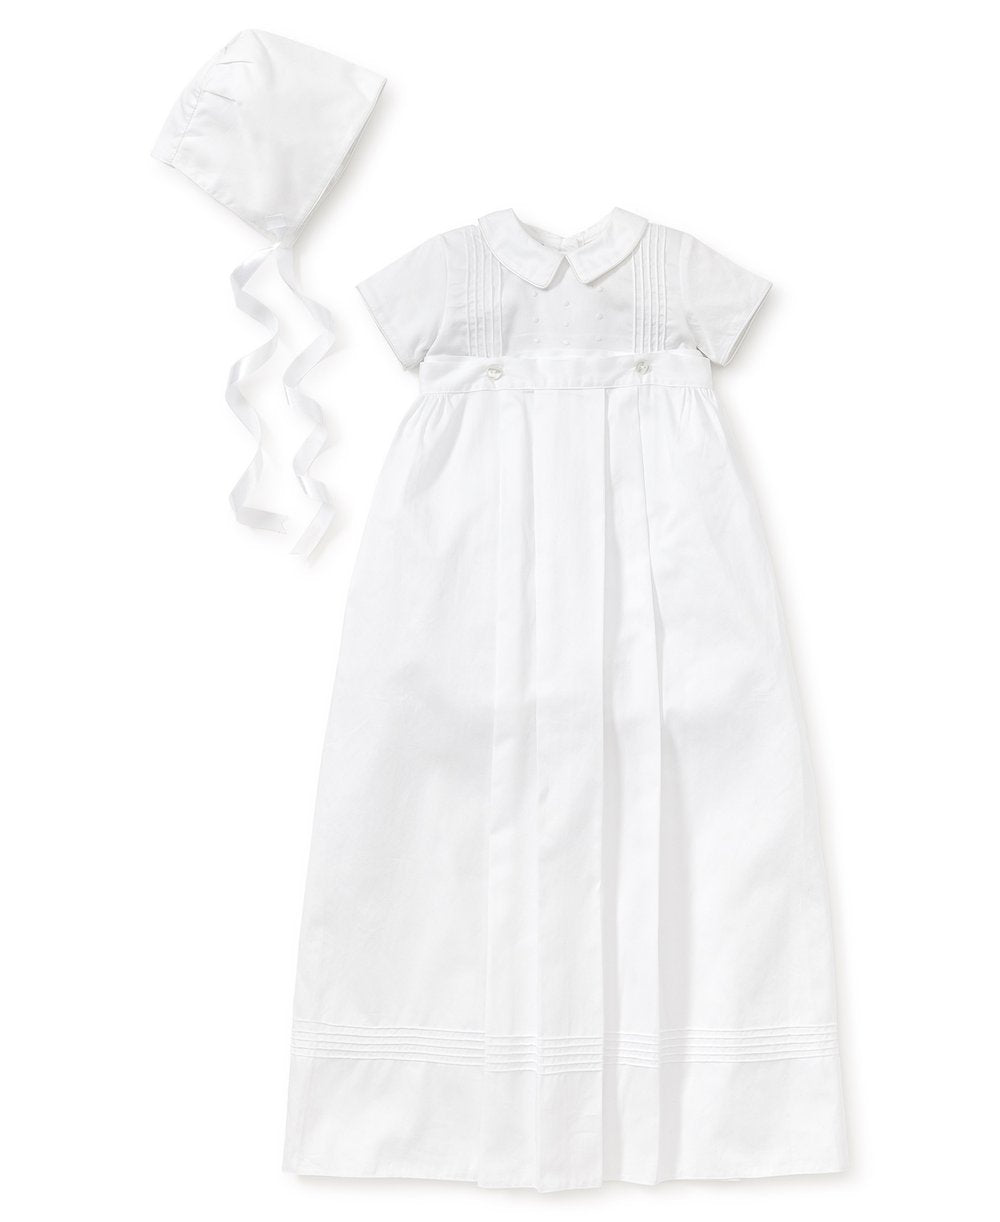 KK 3 PC Boy White Button Off Gown/Bubble